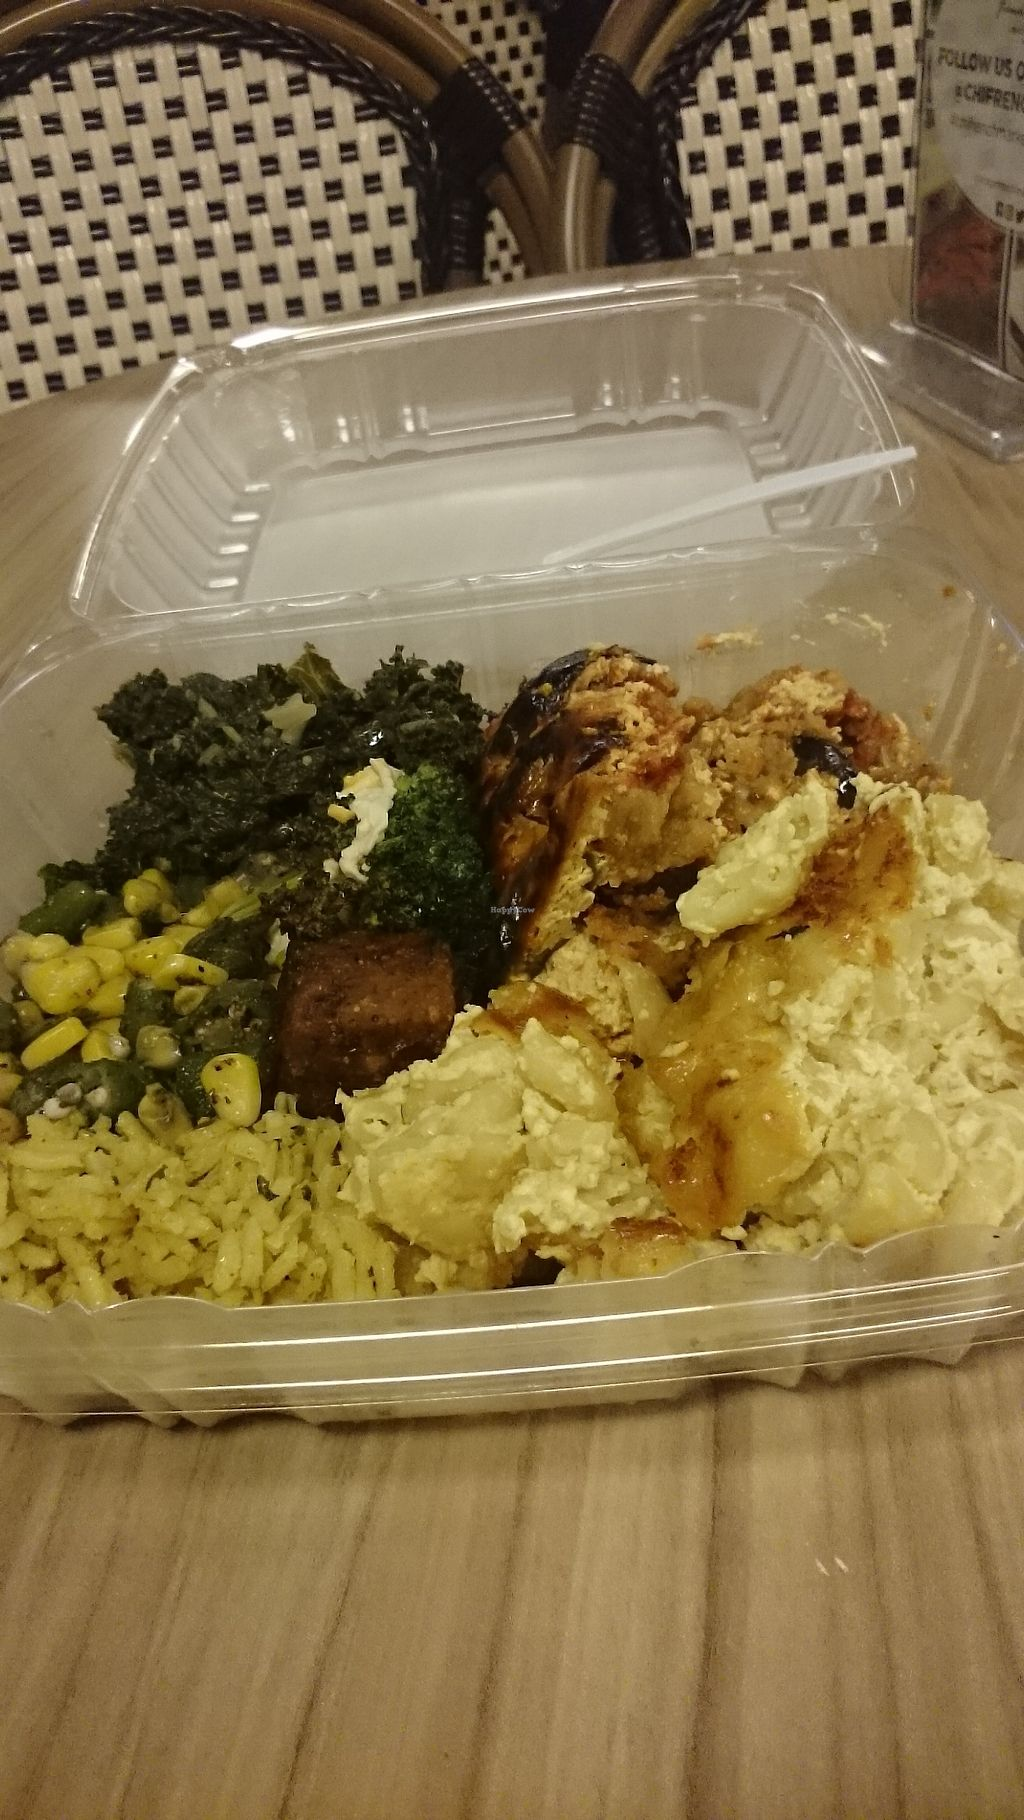 """Photo of Vegan Now  by <a href=""""/members/profile/ZoraySpielvogel"""">ZoraySpielvogel</a> <br/>Eggplant parm,  Mac & cheese,  Thai seitan,  greens & okra ?.   <br/> January 28, 2018  - <a href='/contact/abuse/image/71615/352068'>Report</a>"""